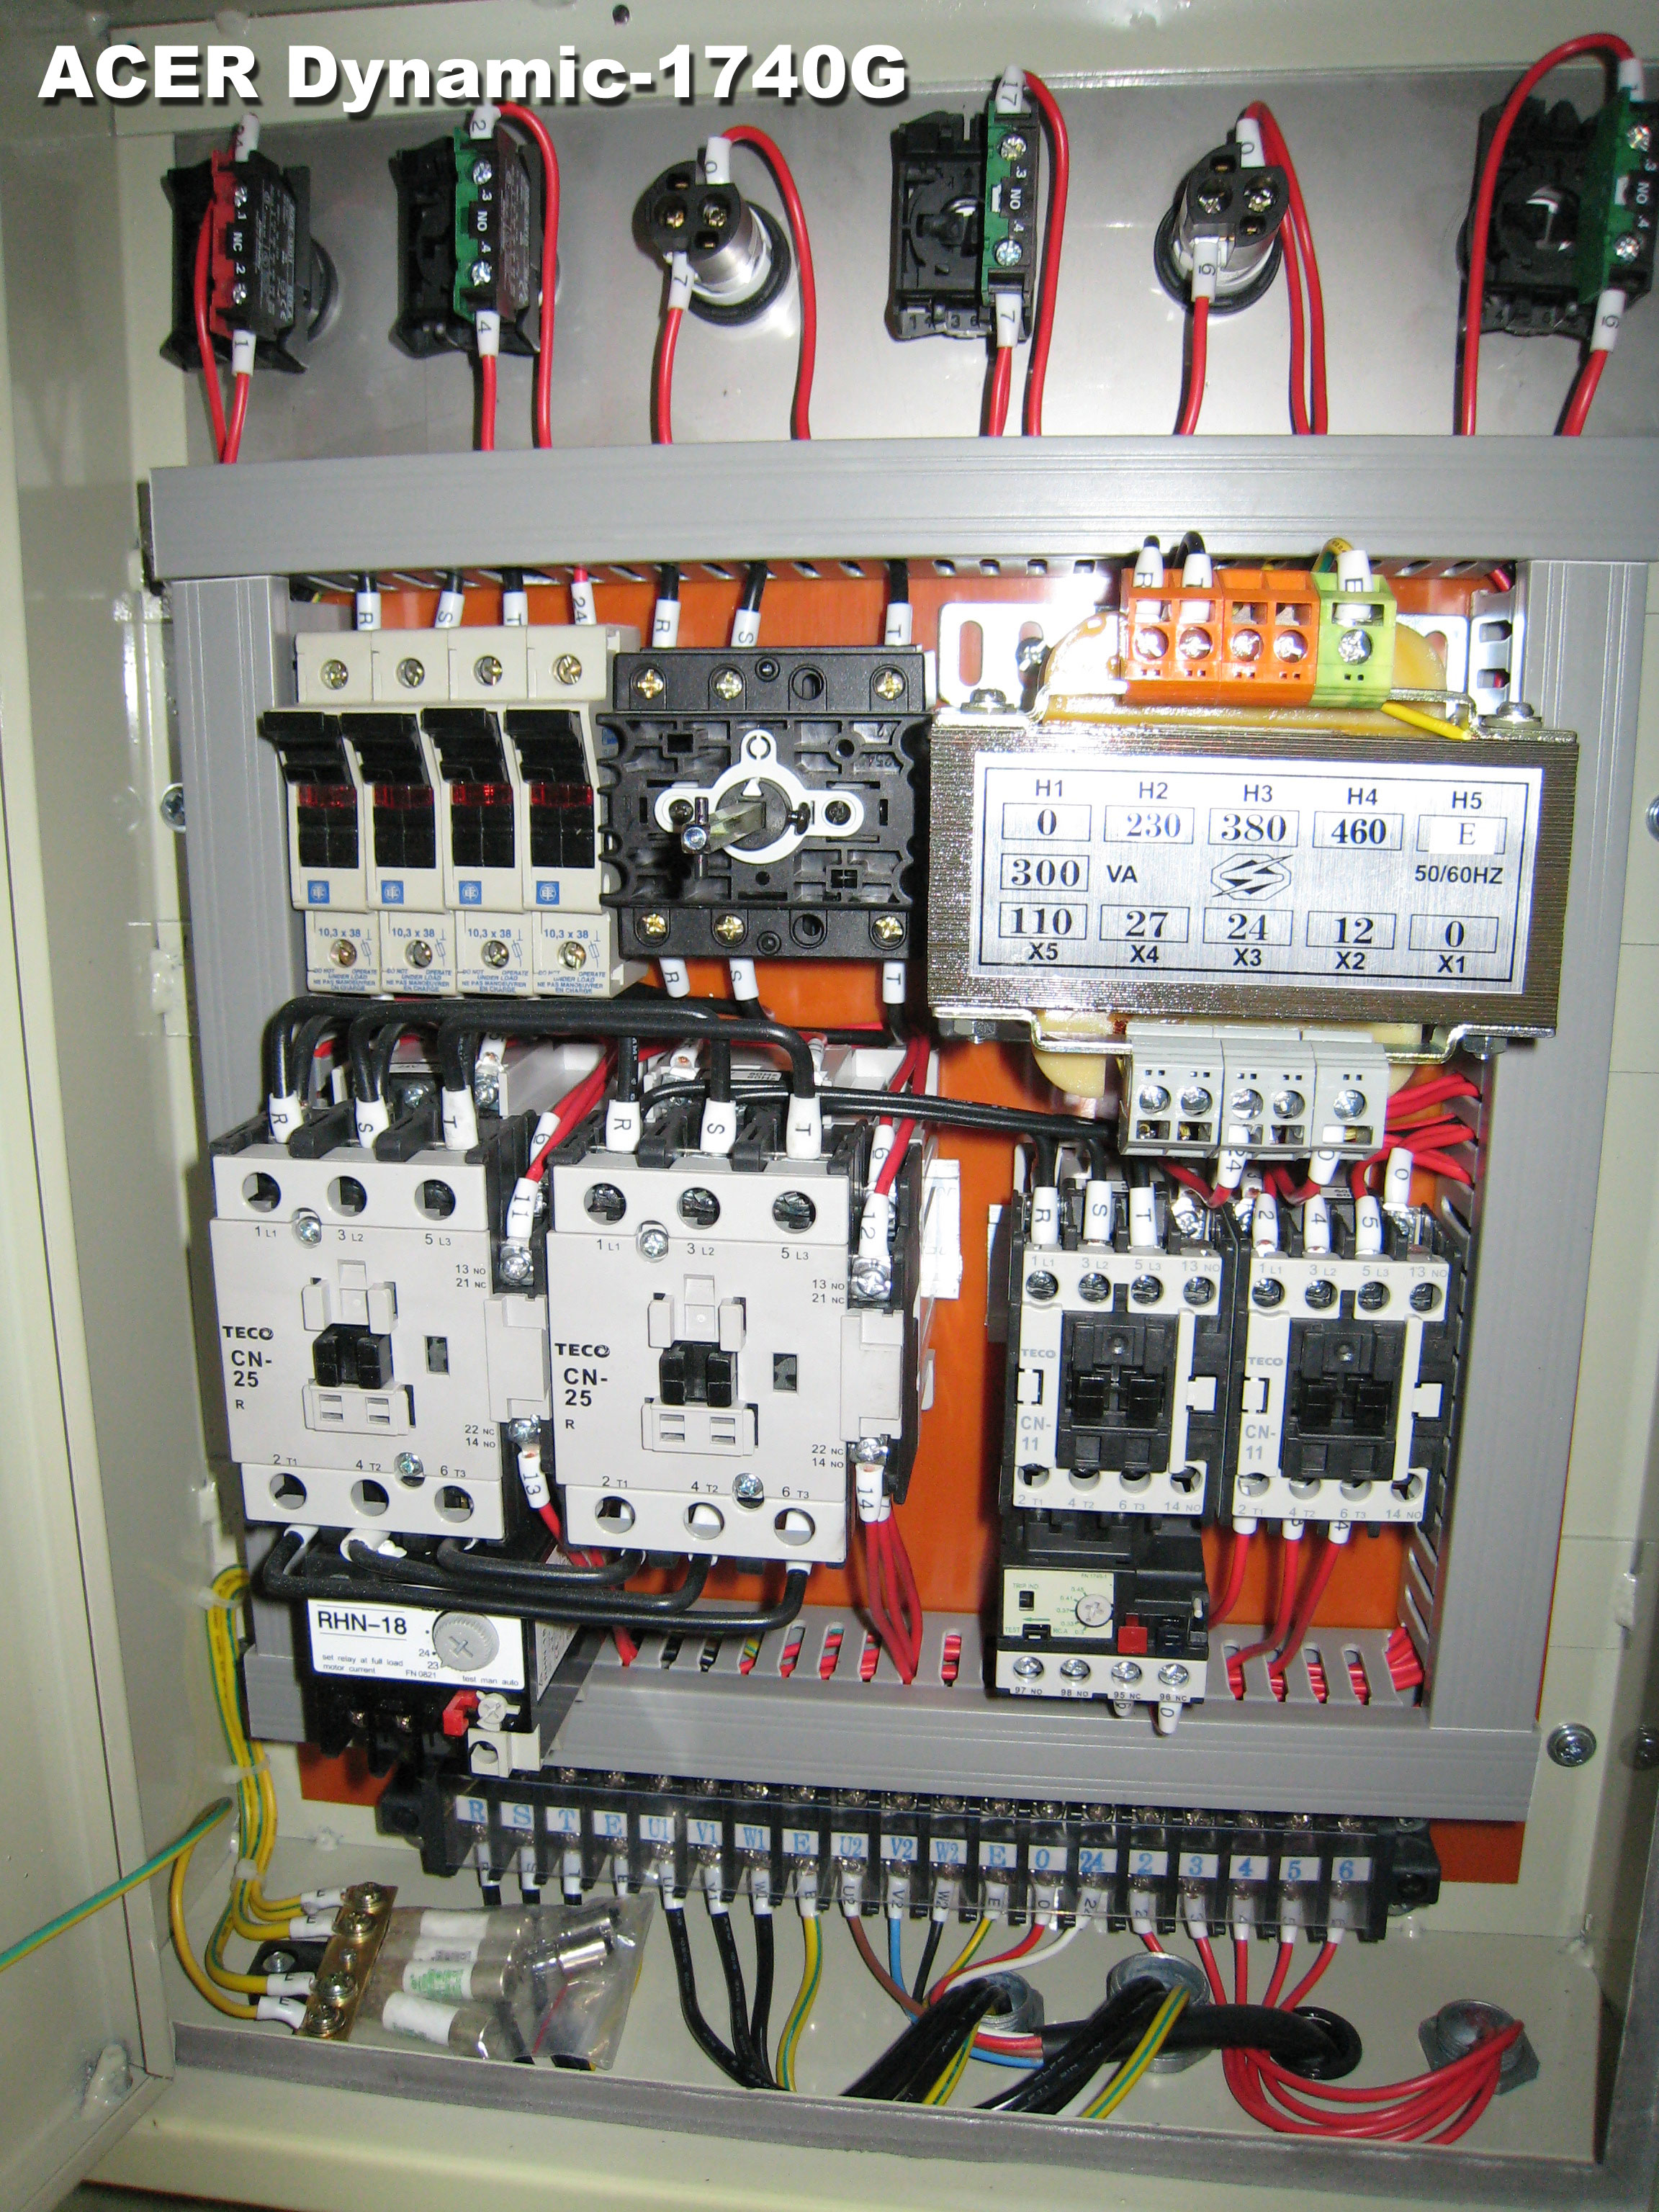 acer group homepage  downloads electrical layout  amp  control panel pics  electrical layout      mb